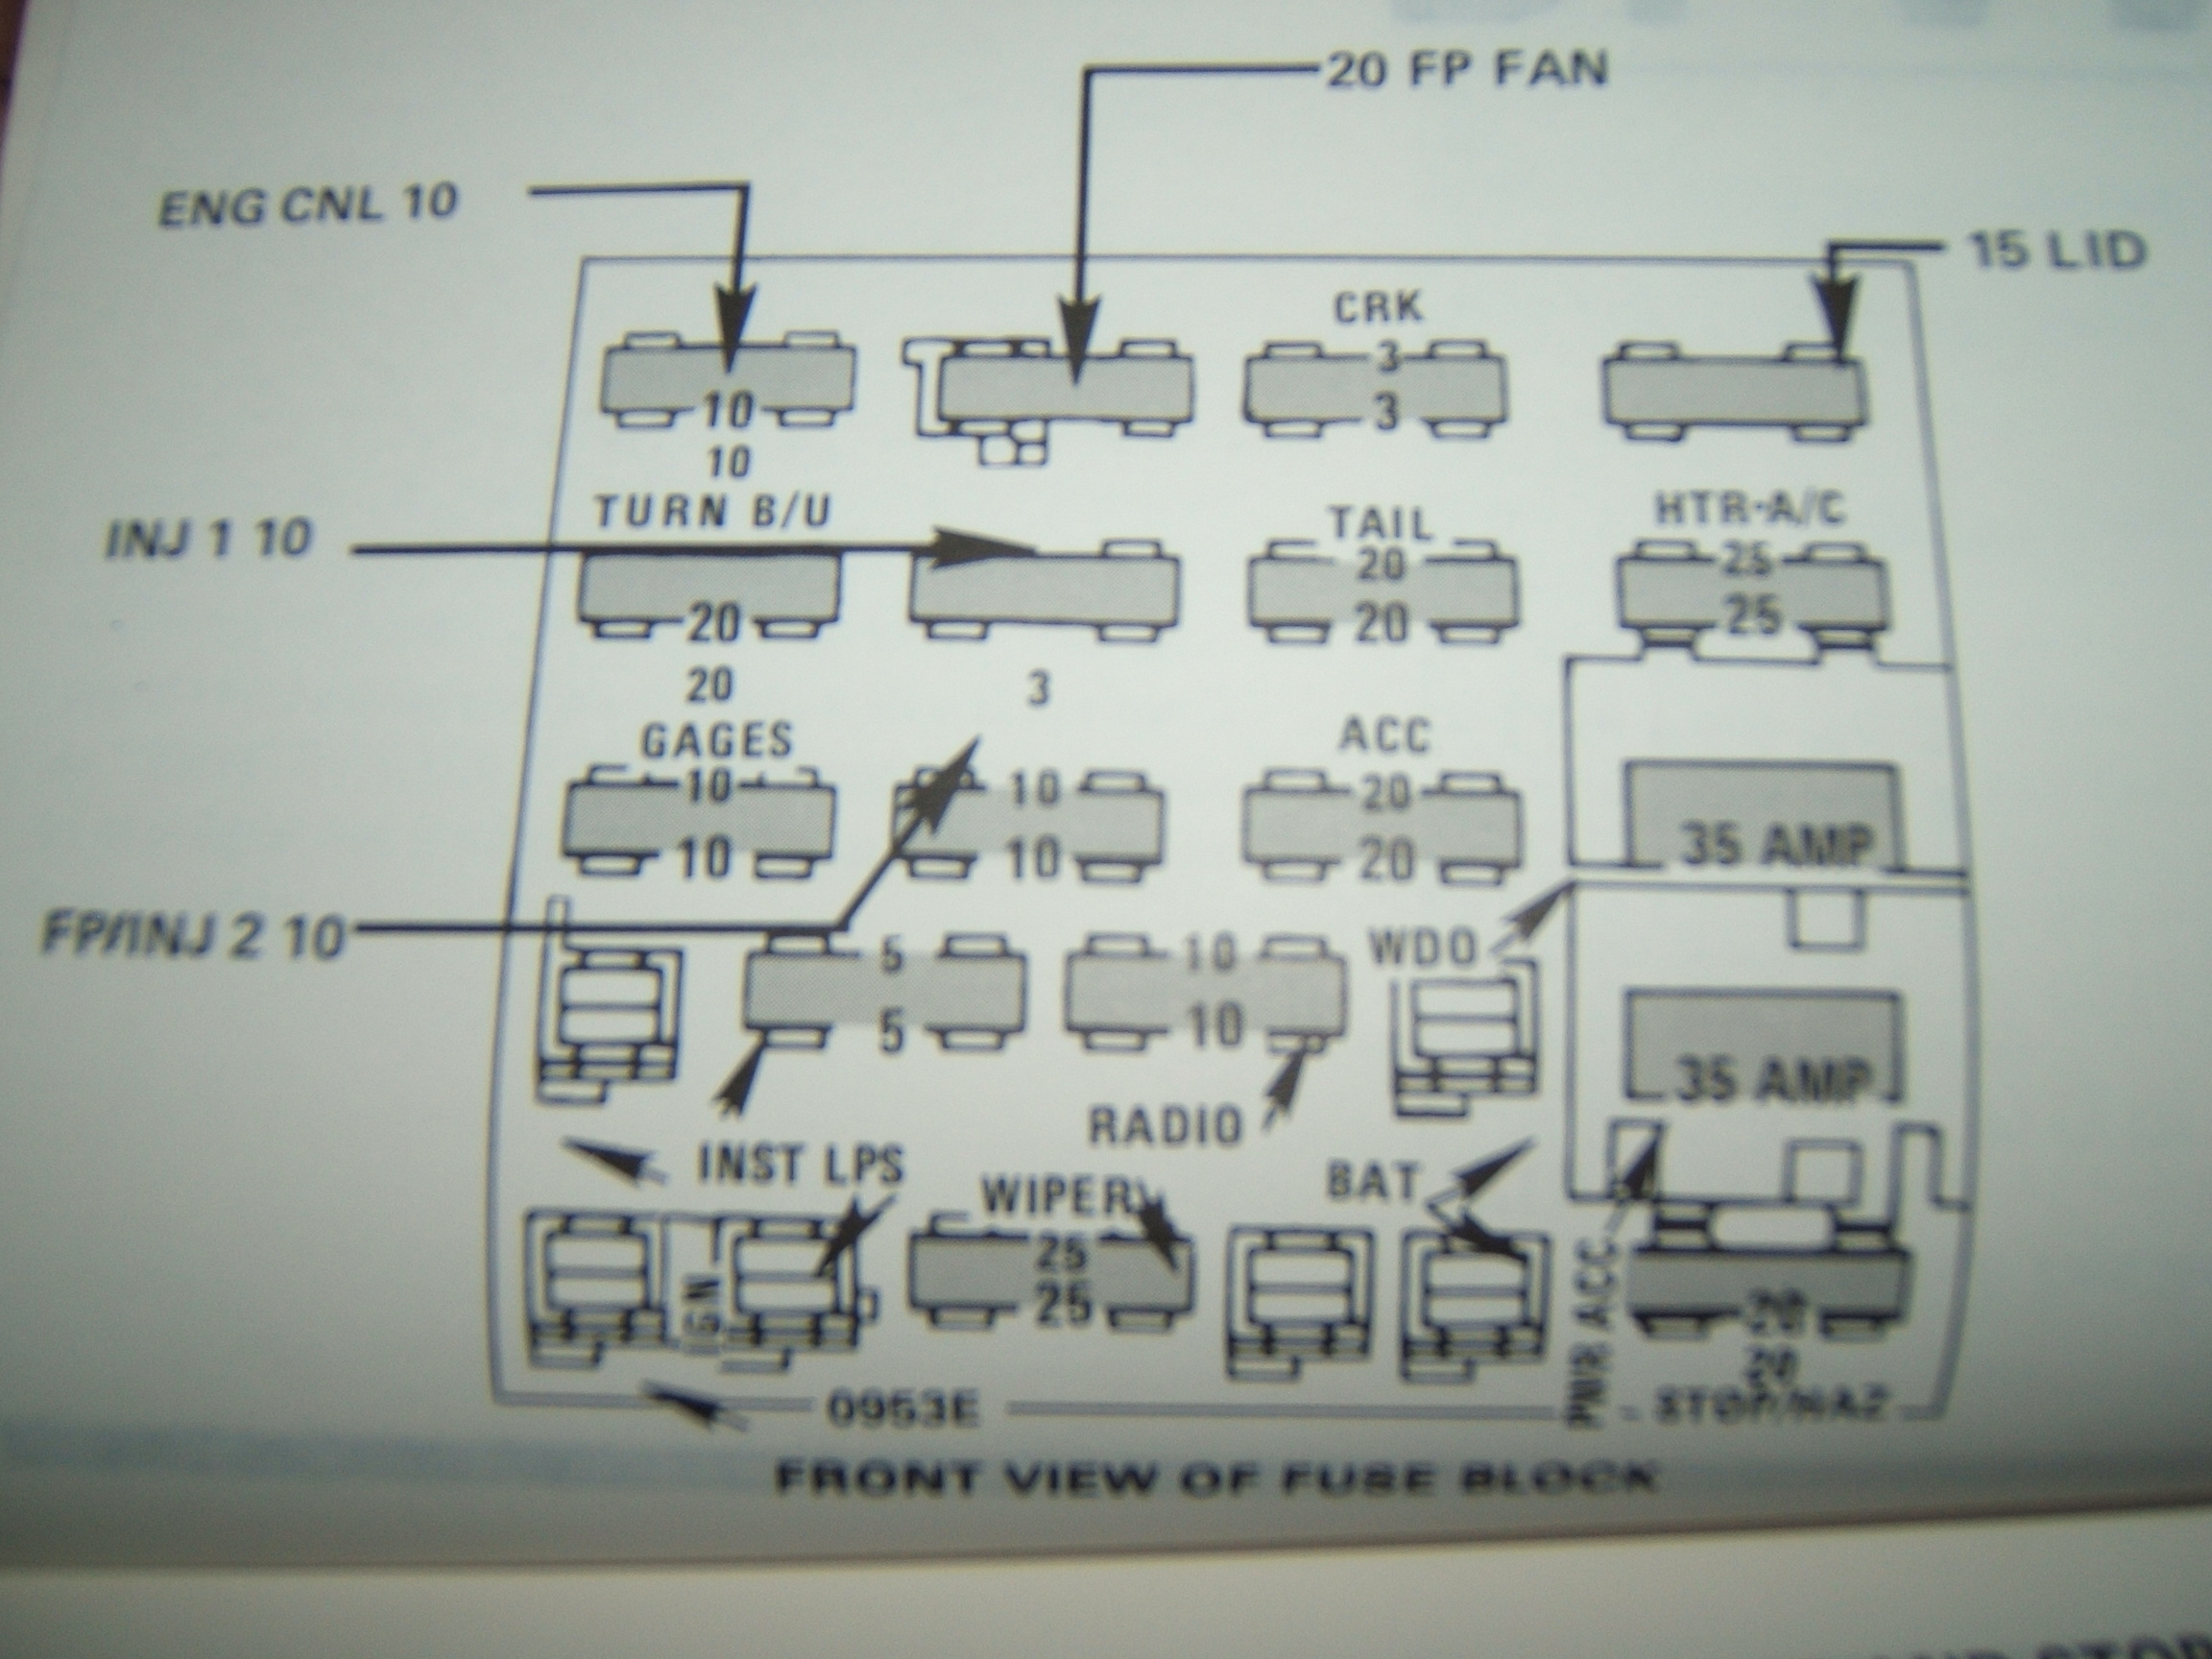 KW 40] Camaro Fuse Box Diagram Together With 40 Buick Regal ...